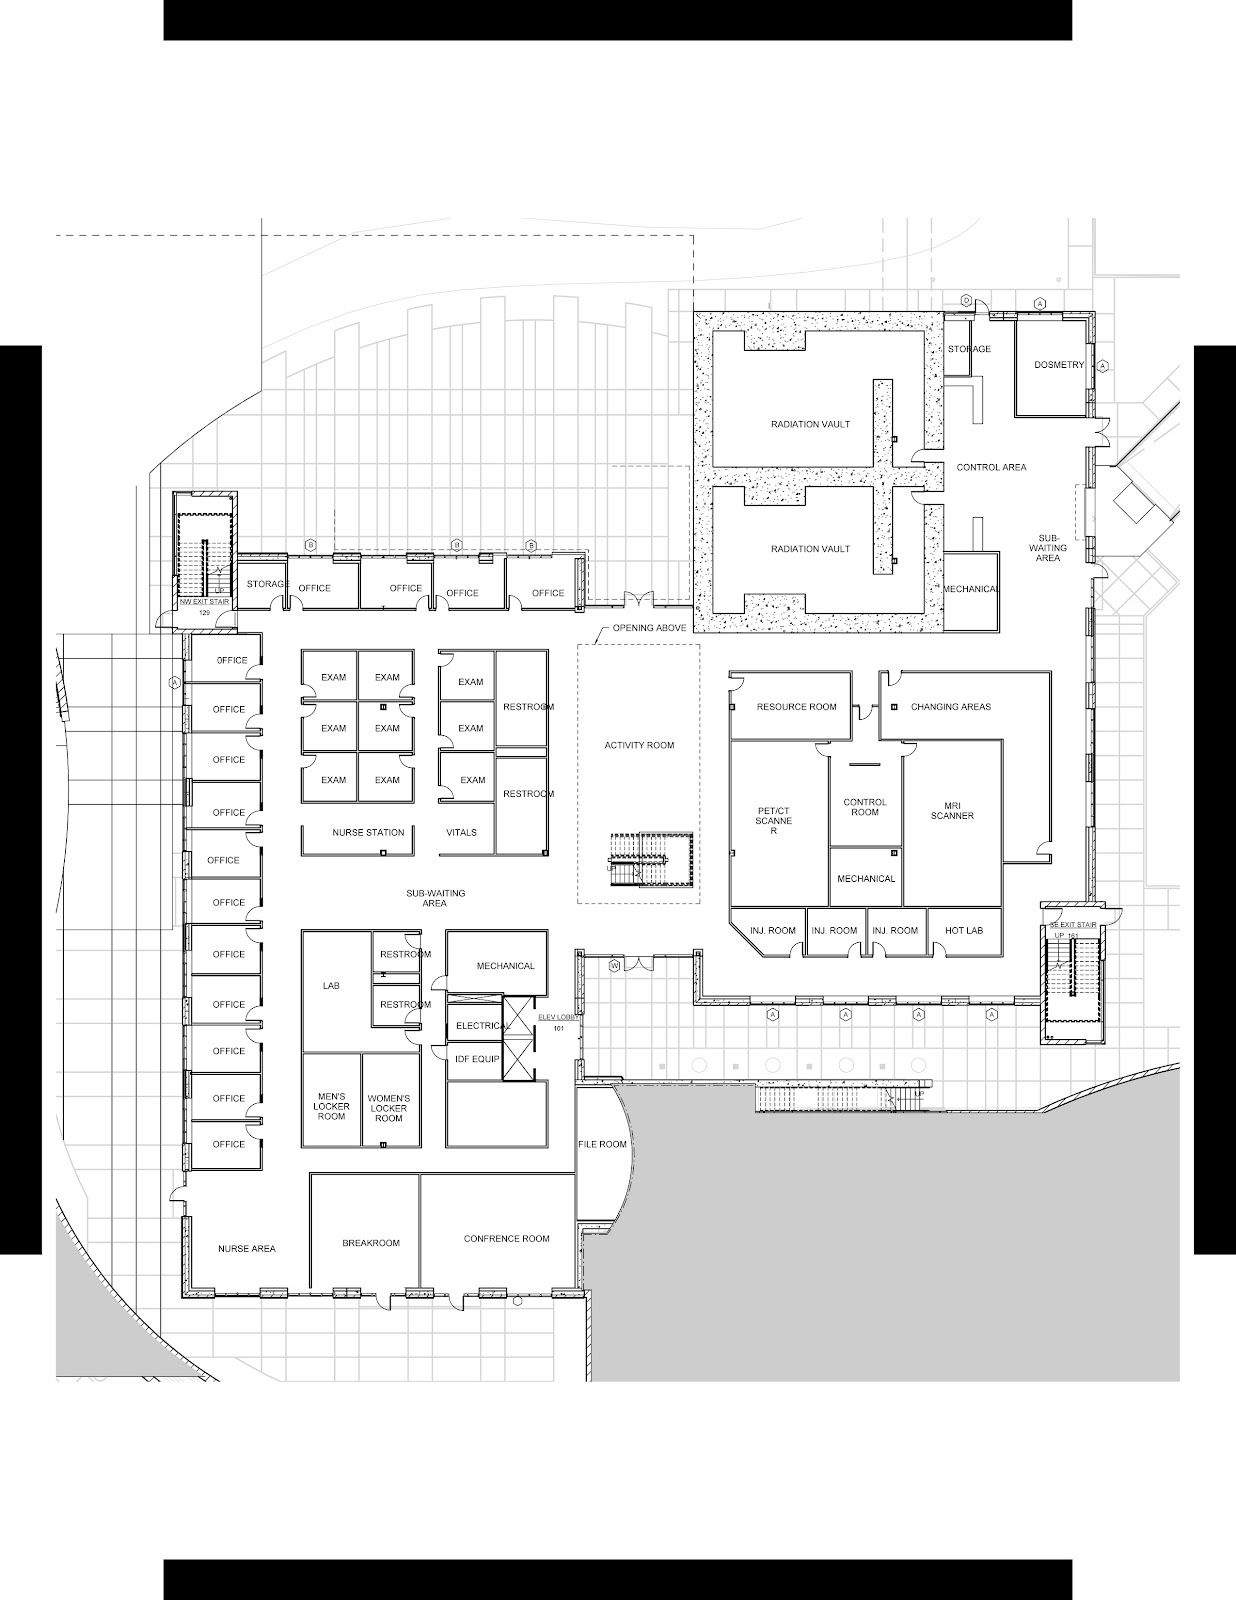 Oncology Center Floor Plans Oncology Floor Plan